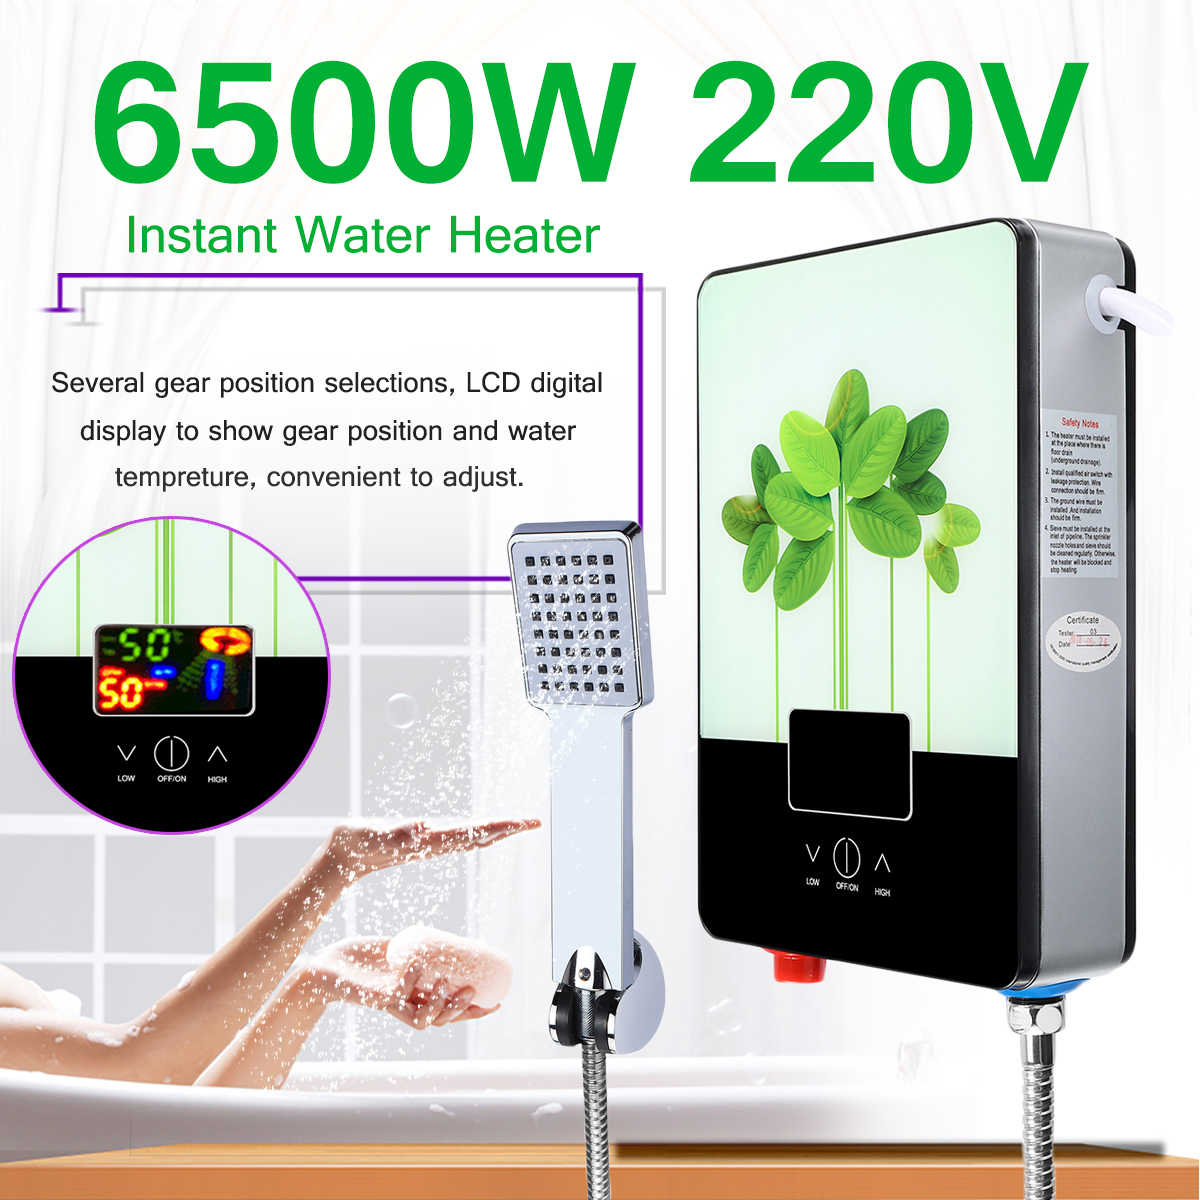 Electric Hot Water Heater 6500W 220V Tankless Instant Boiler Bathroom Shower Set Thermostat Safe Intelligent Automatically dsk 65 high quality instant tankless water heater 6500w 220v thermostat induction heater smart touch electrical shower heaters